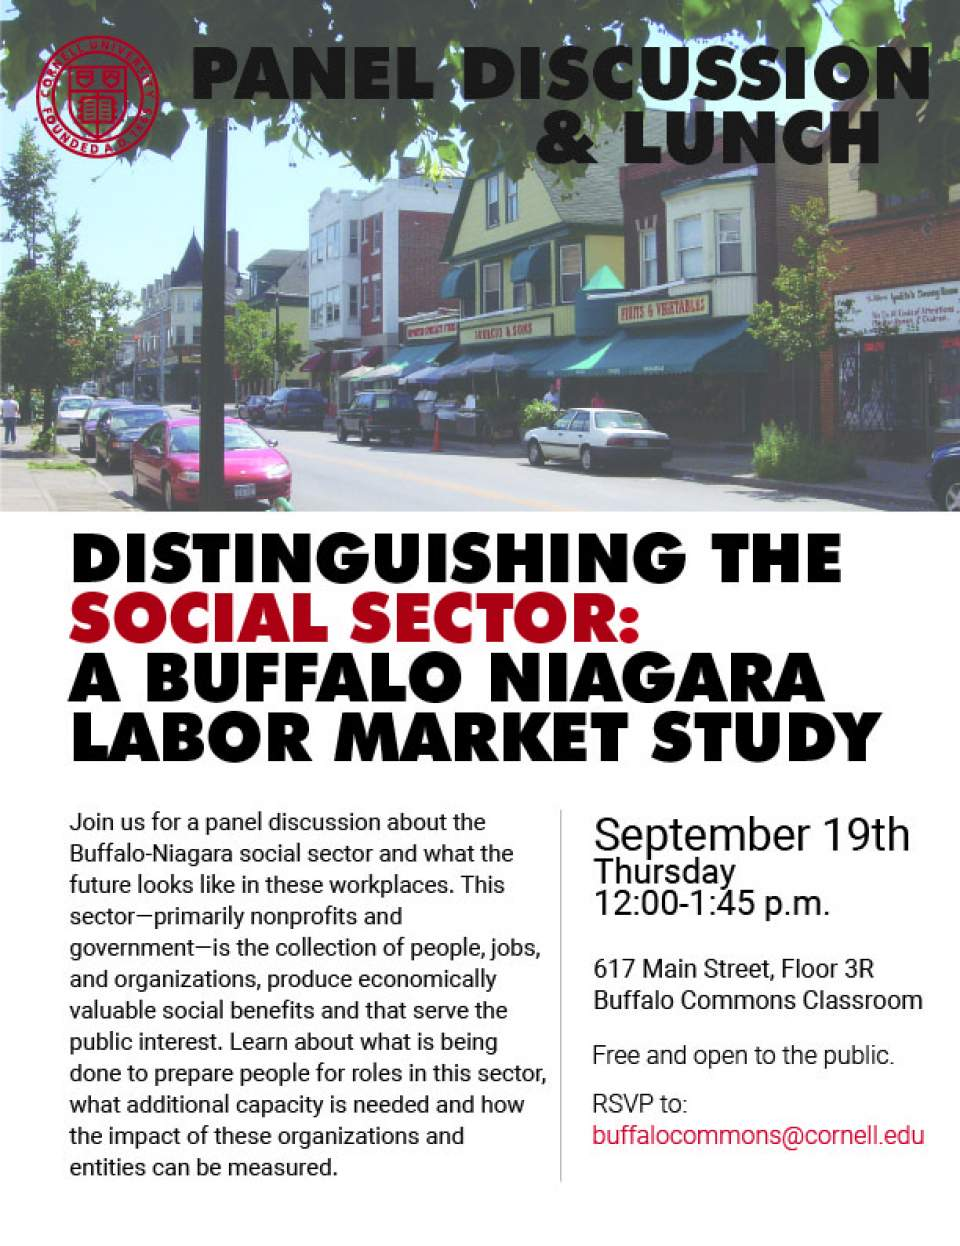 Distinguishing the Social Sector: Panel Discussion and Lunch